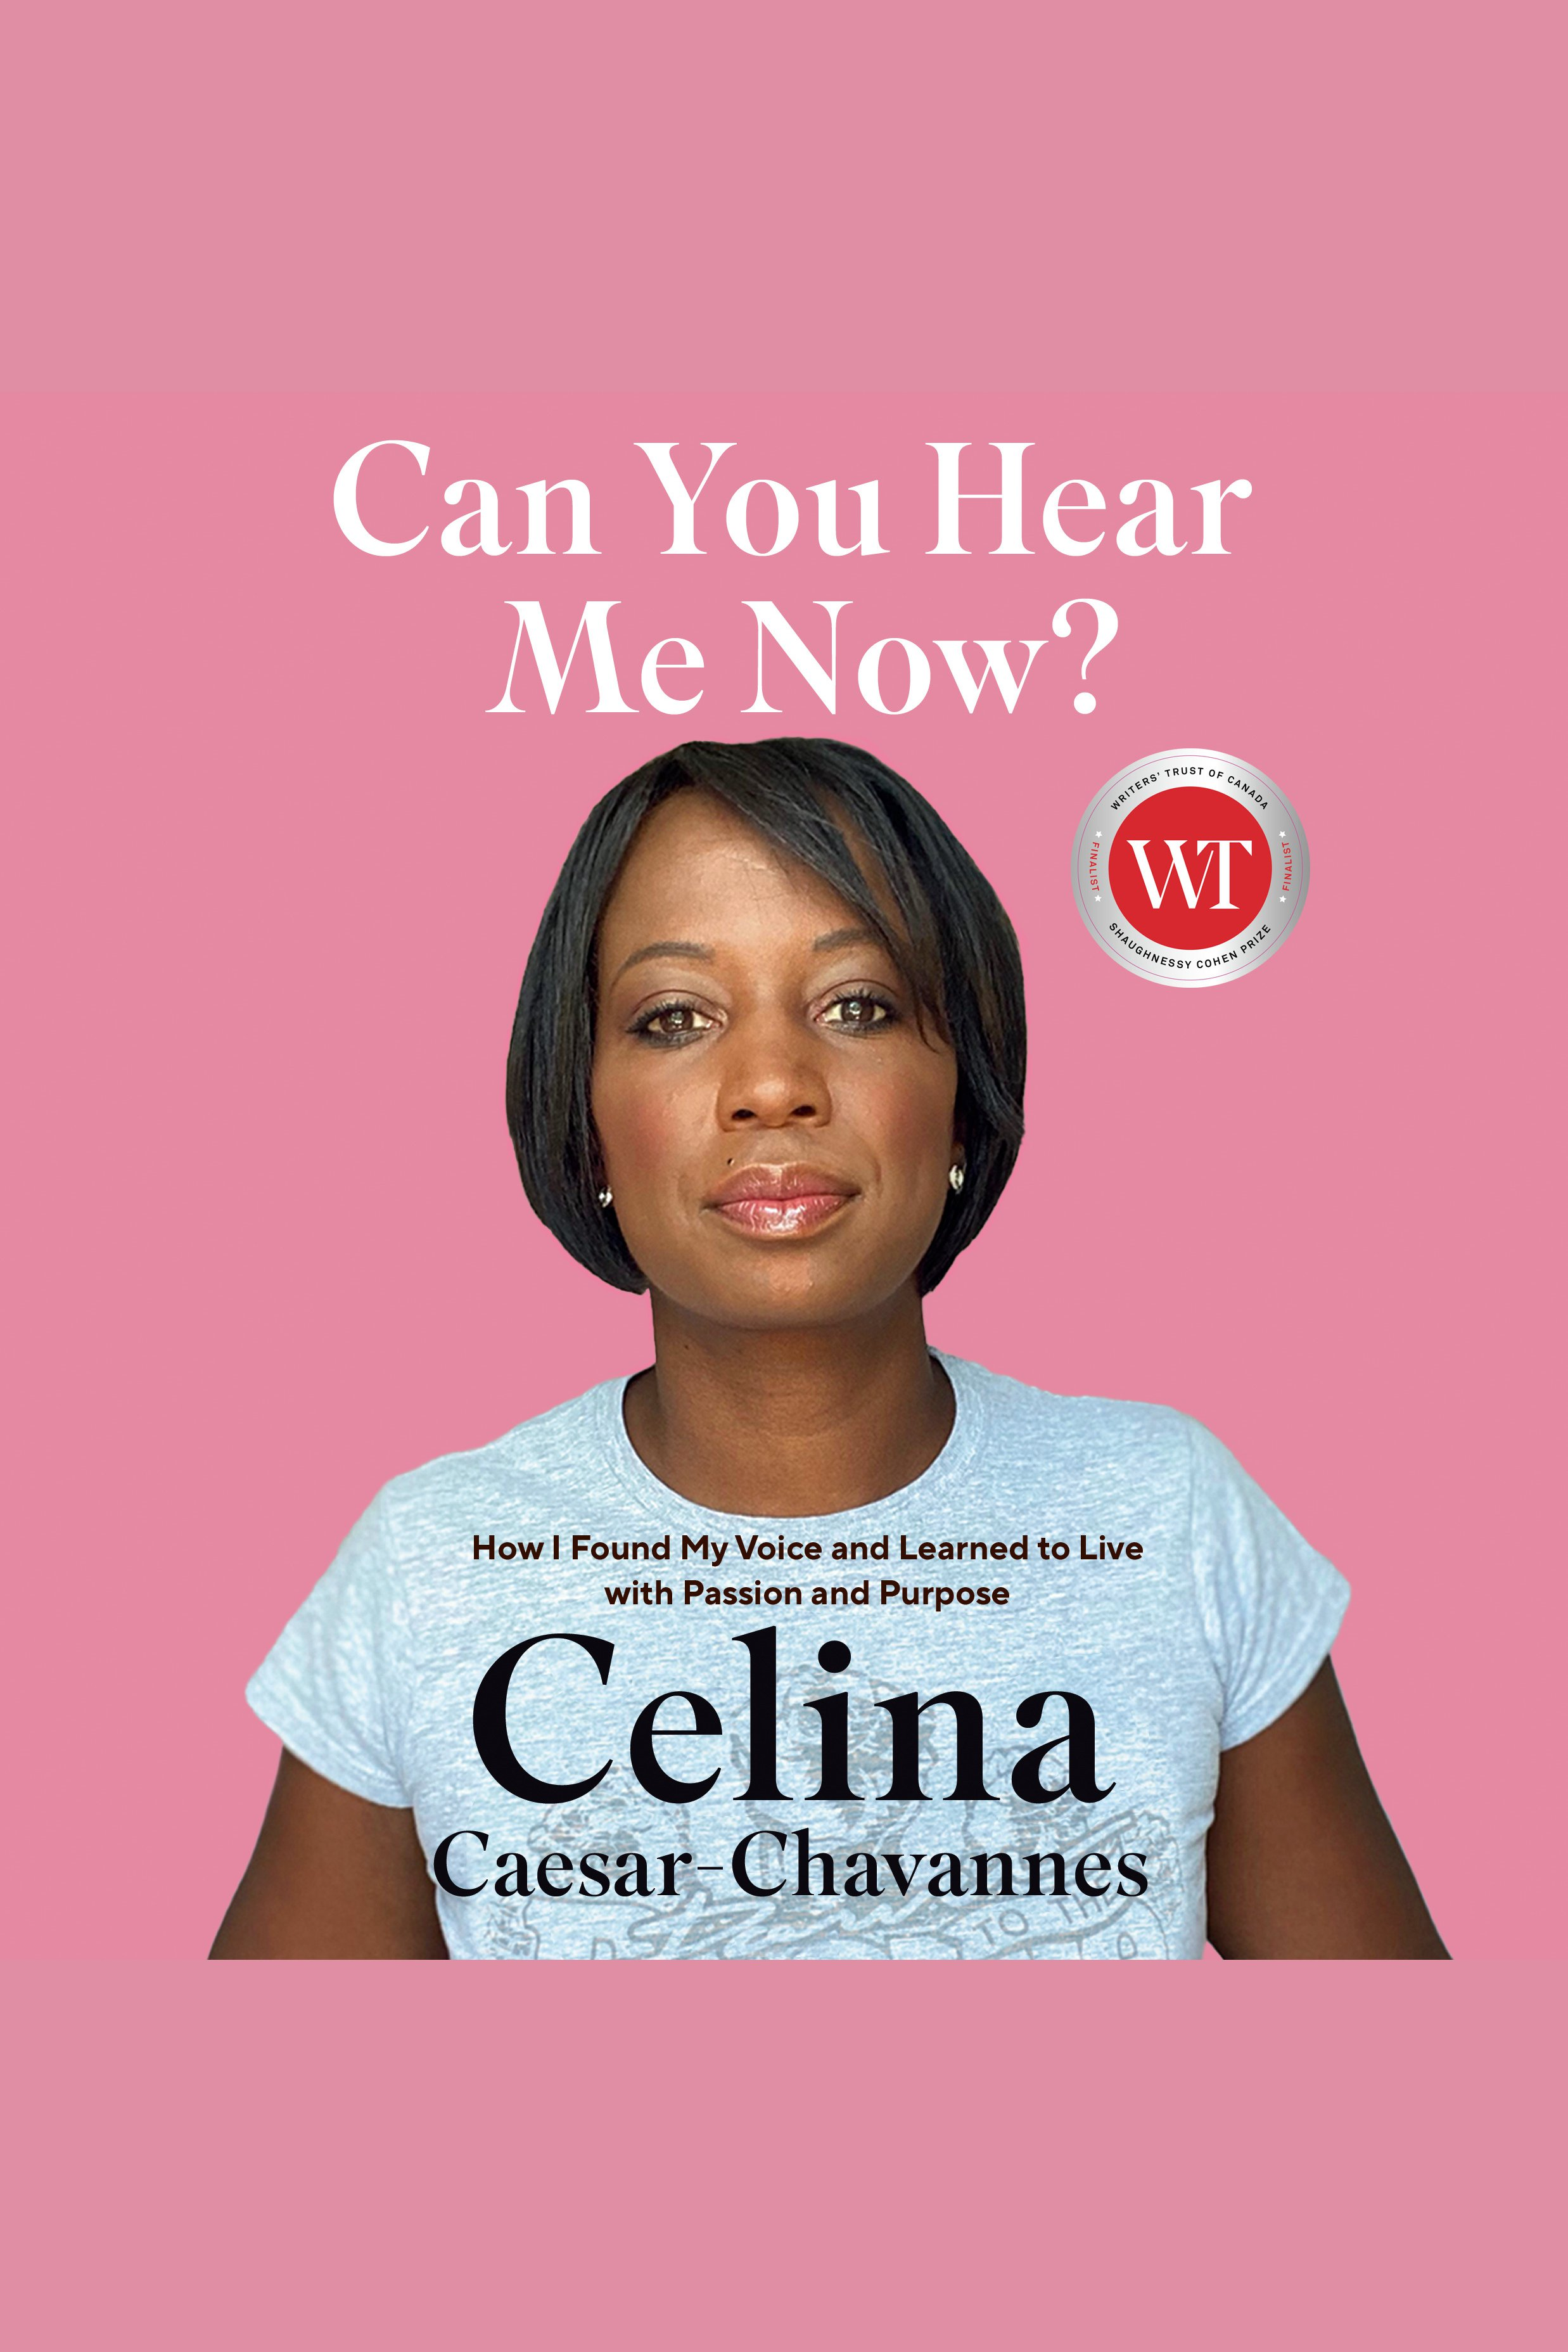 Can You Hear Me Now? How I Found My Voice and Learned to Live with Passion and Purpose